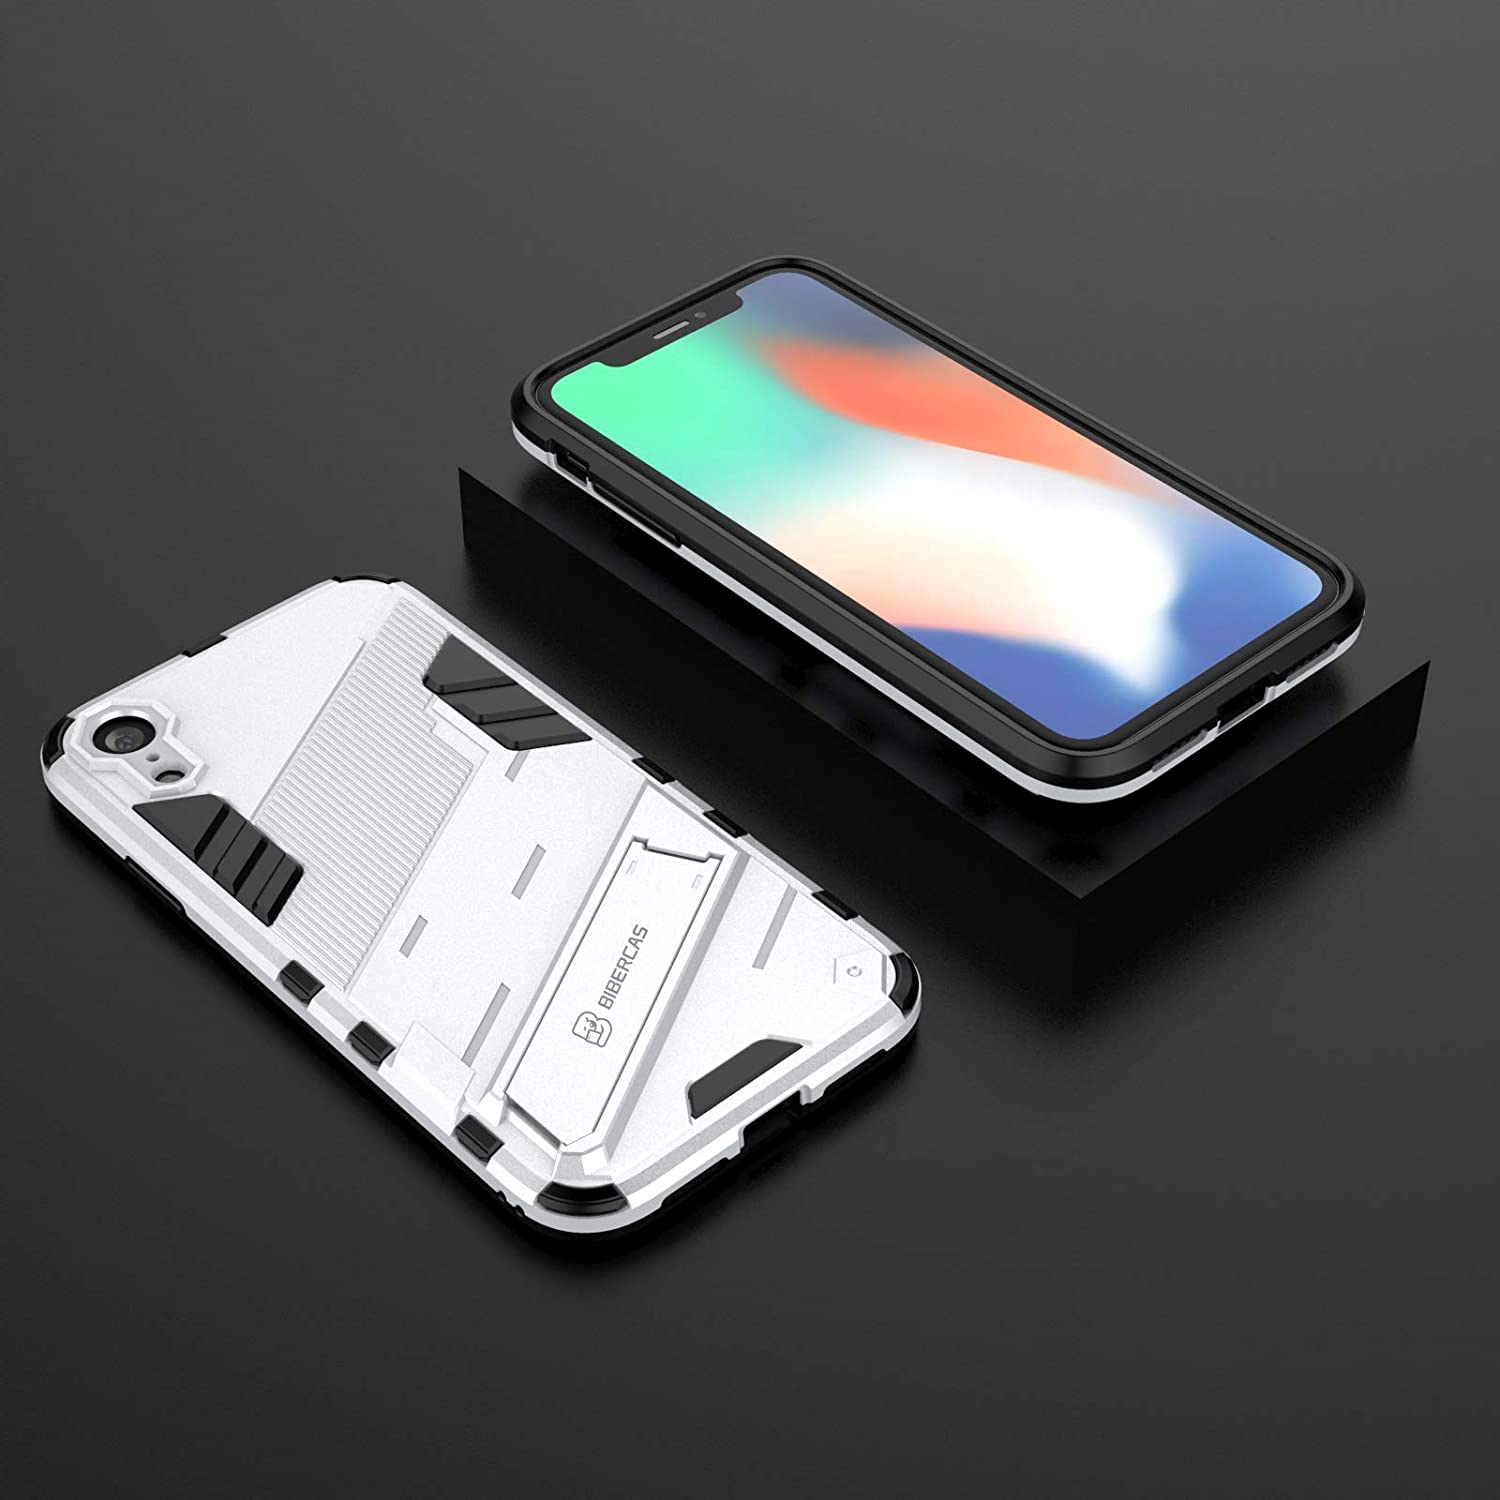 XIAYAN Phone Covers Protective Case for iPhone XR,Protective Shockproof Case Holder,to Protect The Camera,PC & TPU Mobile Phone Case Protective Cover Protective Cover Case Skin (Color : Sliver)